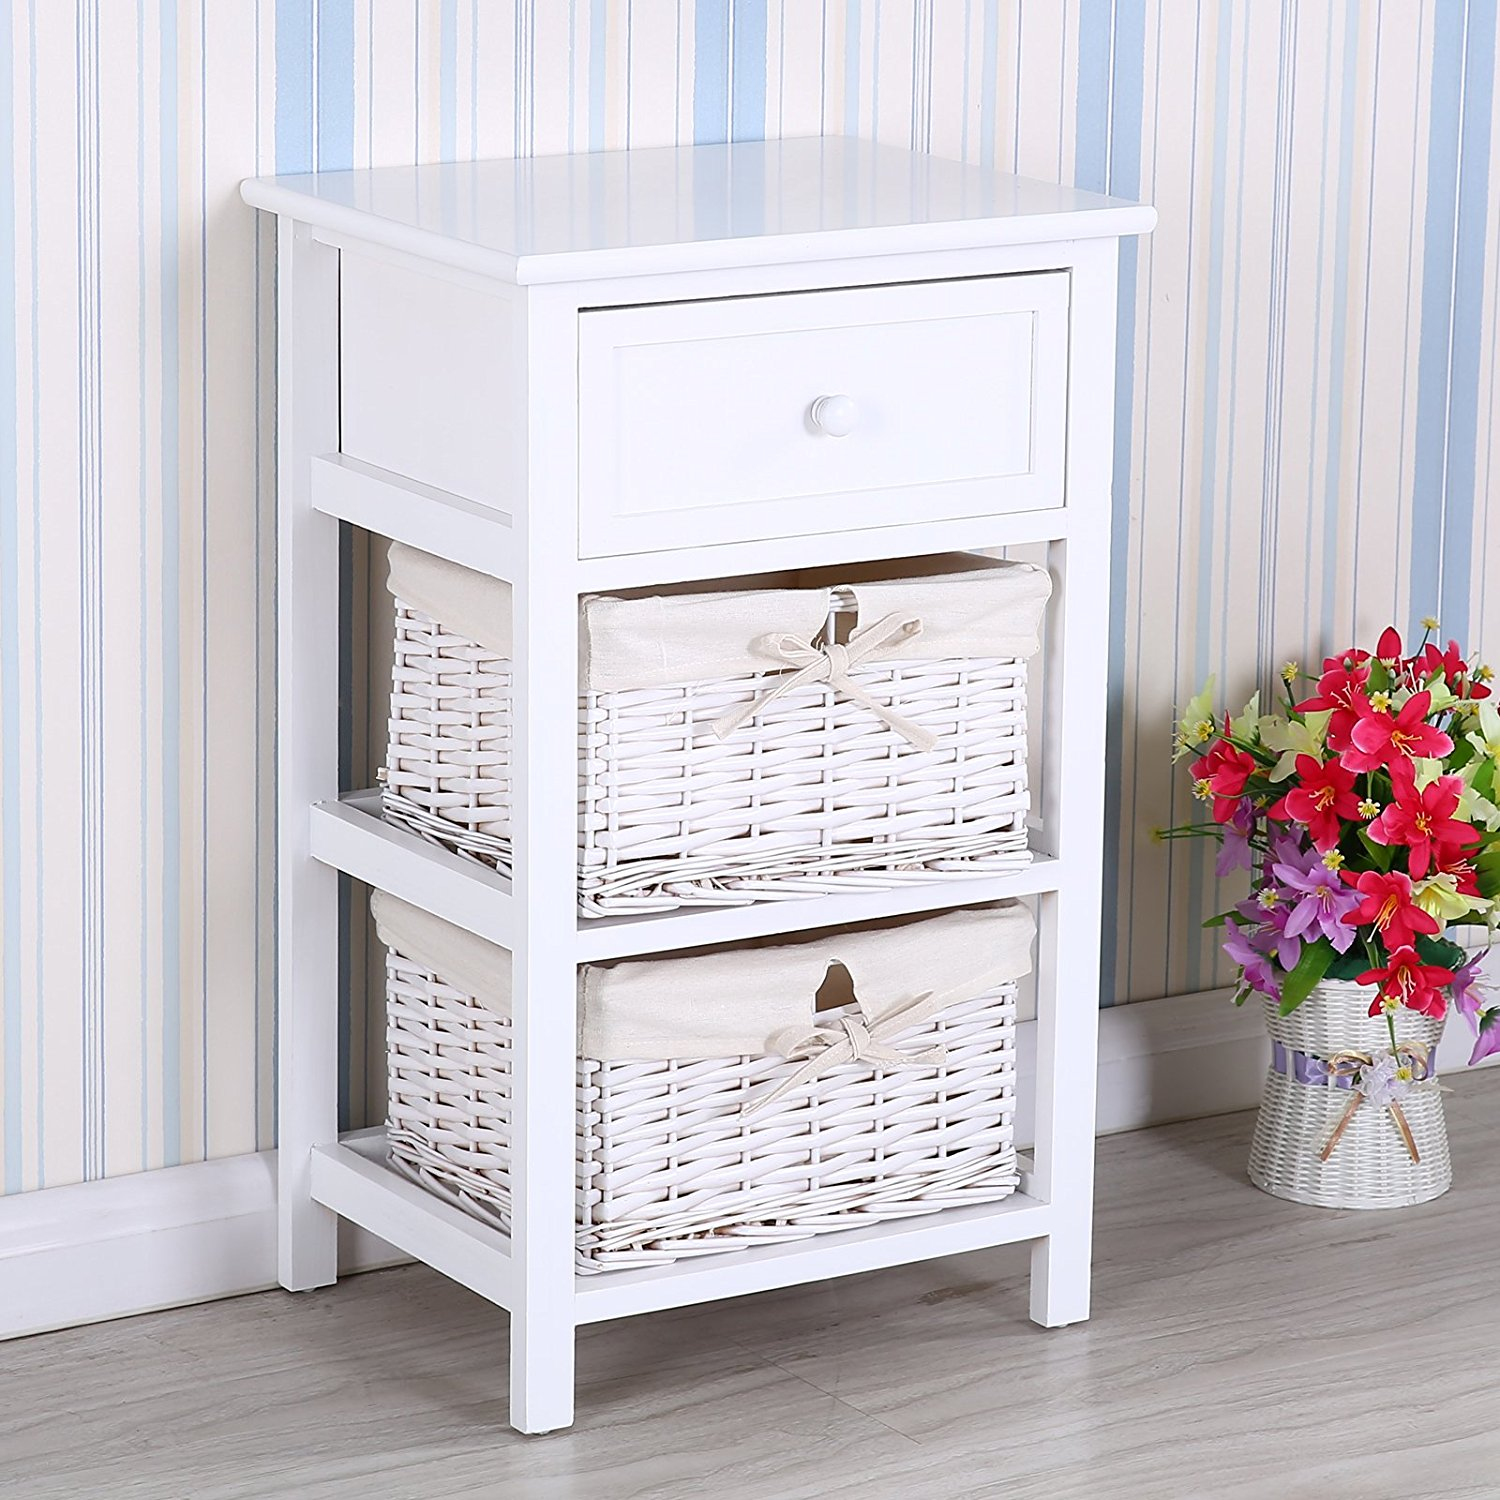 Mecor Retro White Shabby Chic Nightstand End Side Bedside Table w/Wicker Storage Wood